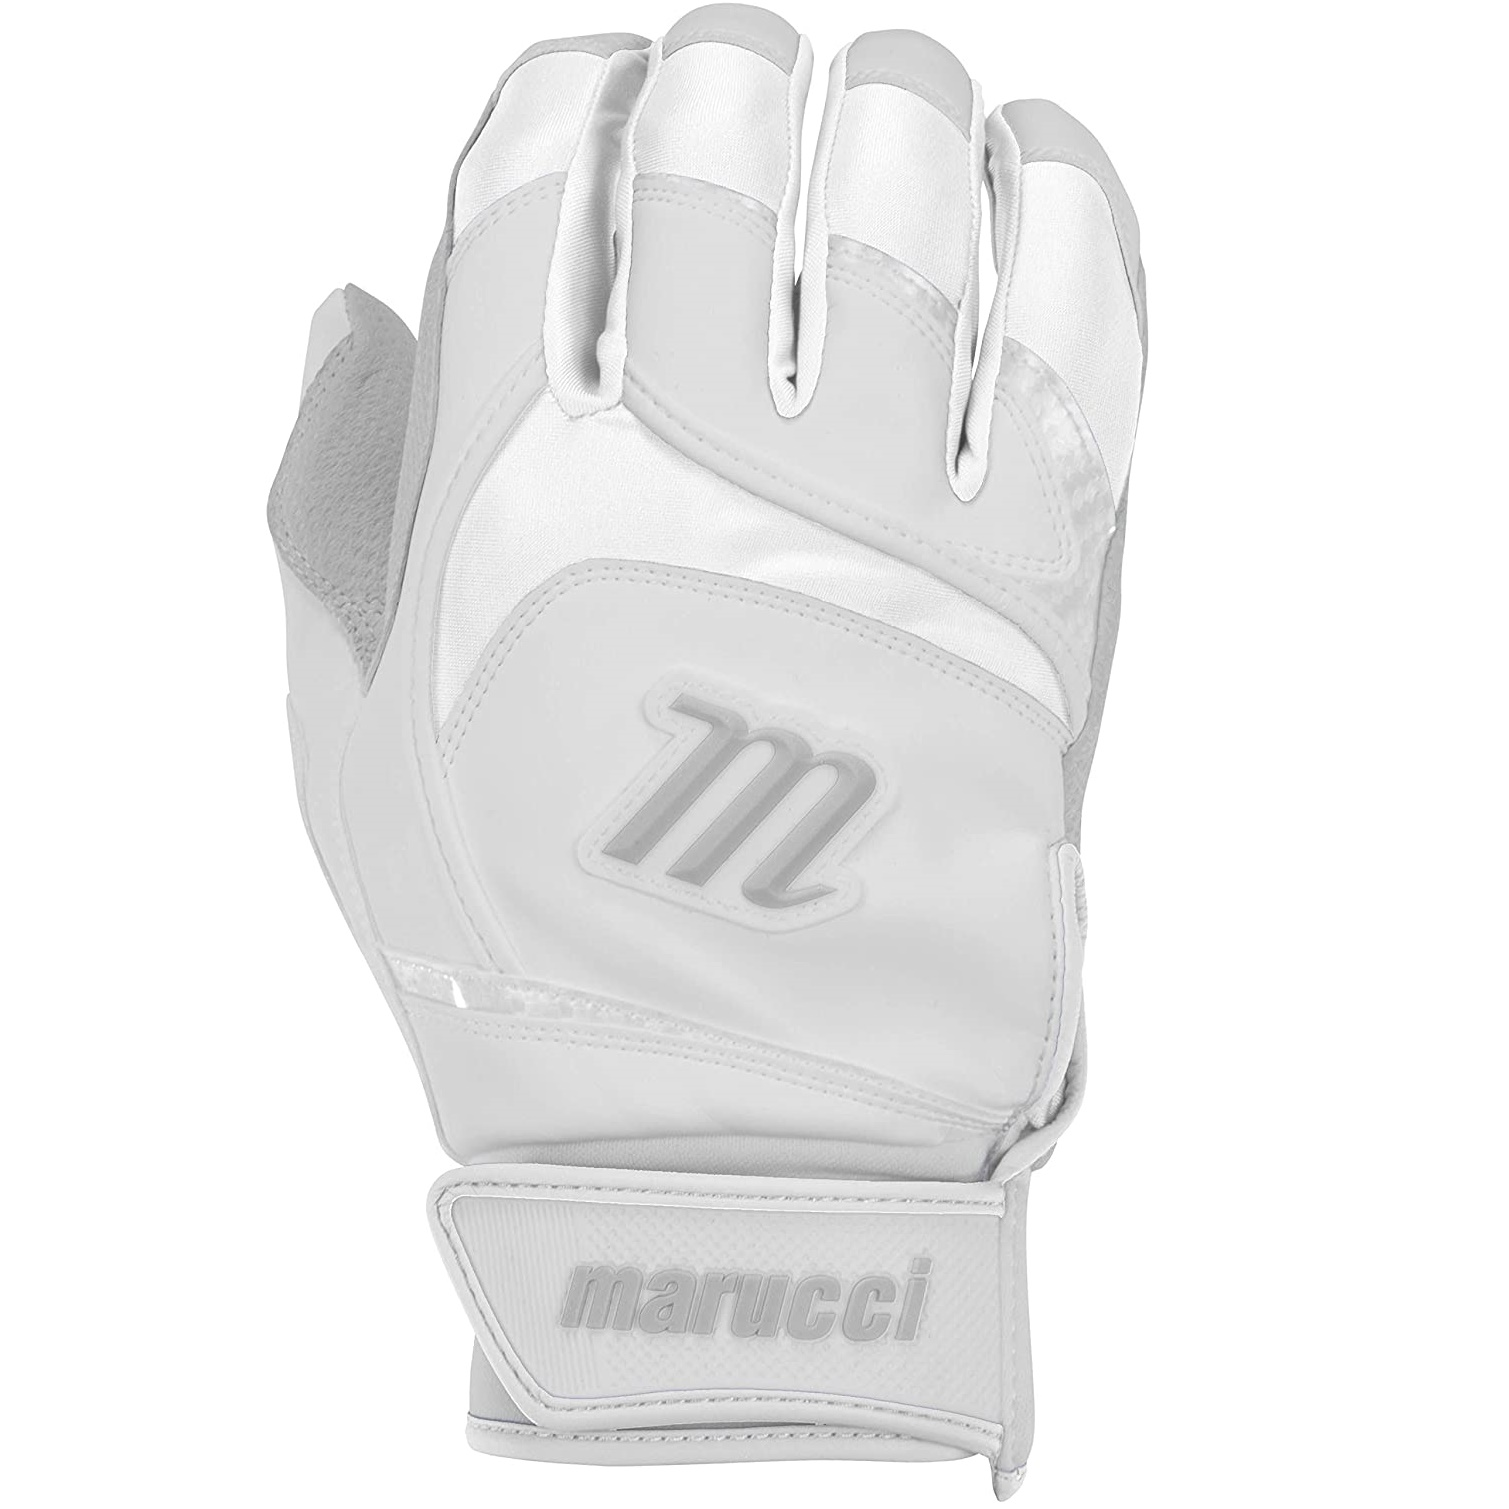 marucci-signature-youth-batting-gloves-white-youth-large MBGSGN2Y-WW-YL Marucci  Digitally embossed perforated Cabretta sheepskin palm provides maximum grip and durability